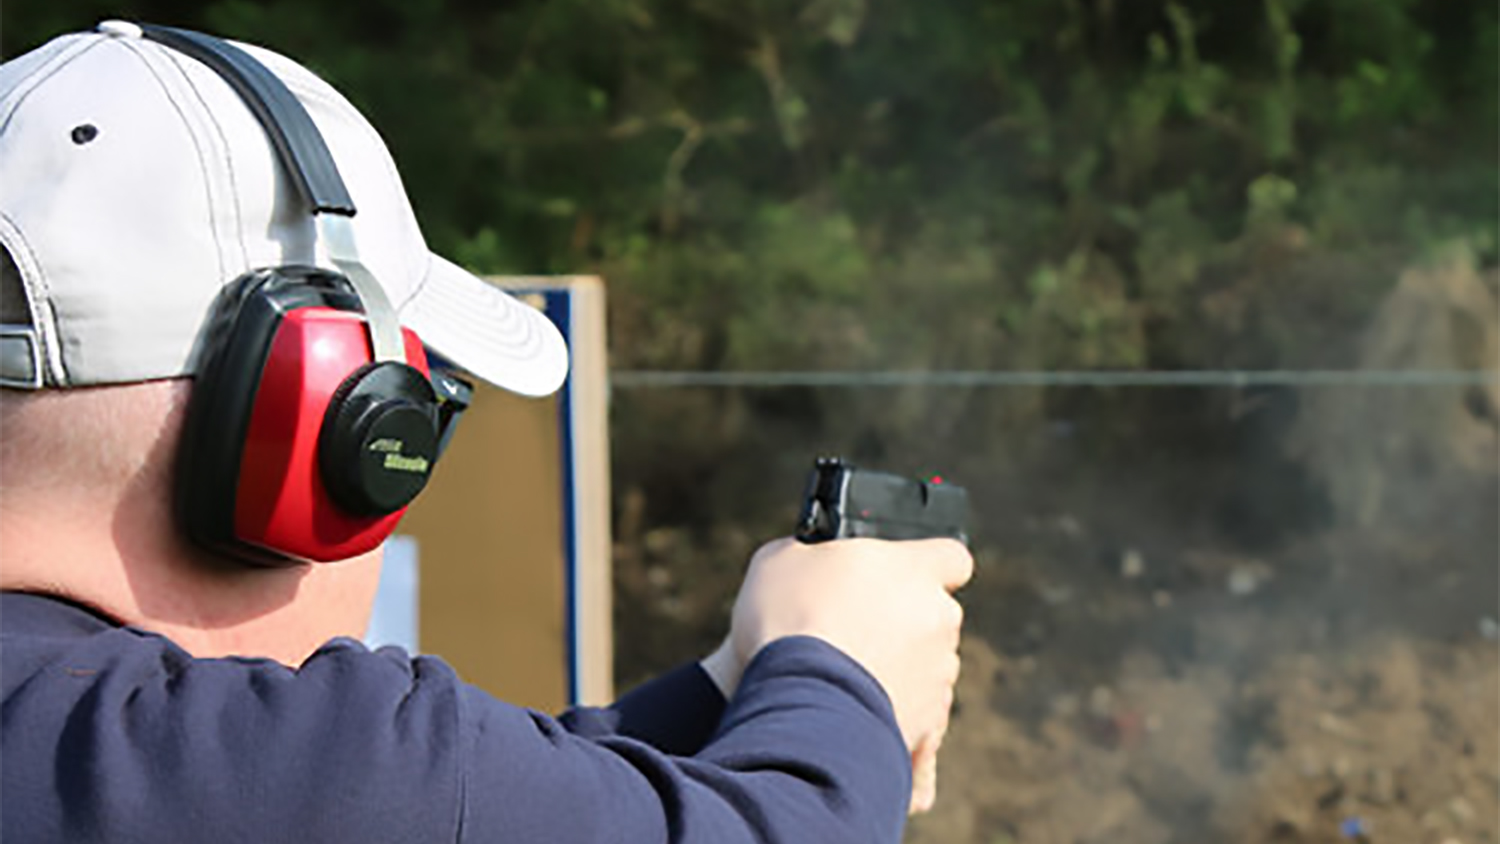 EllwoodCity.org: BC3 Offers NRA Basic Pistol Shooting Courses This Summer